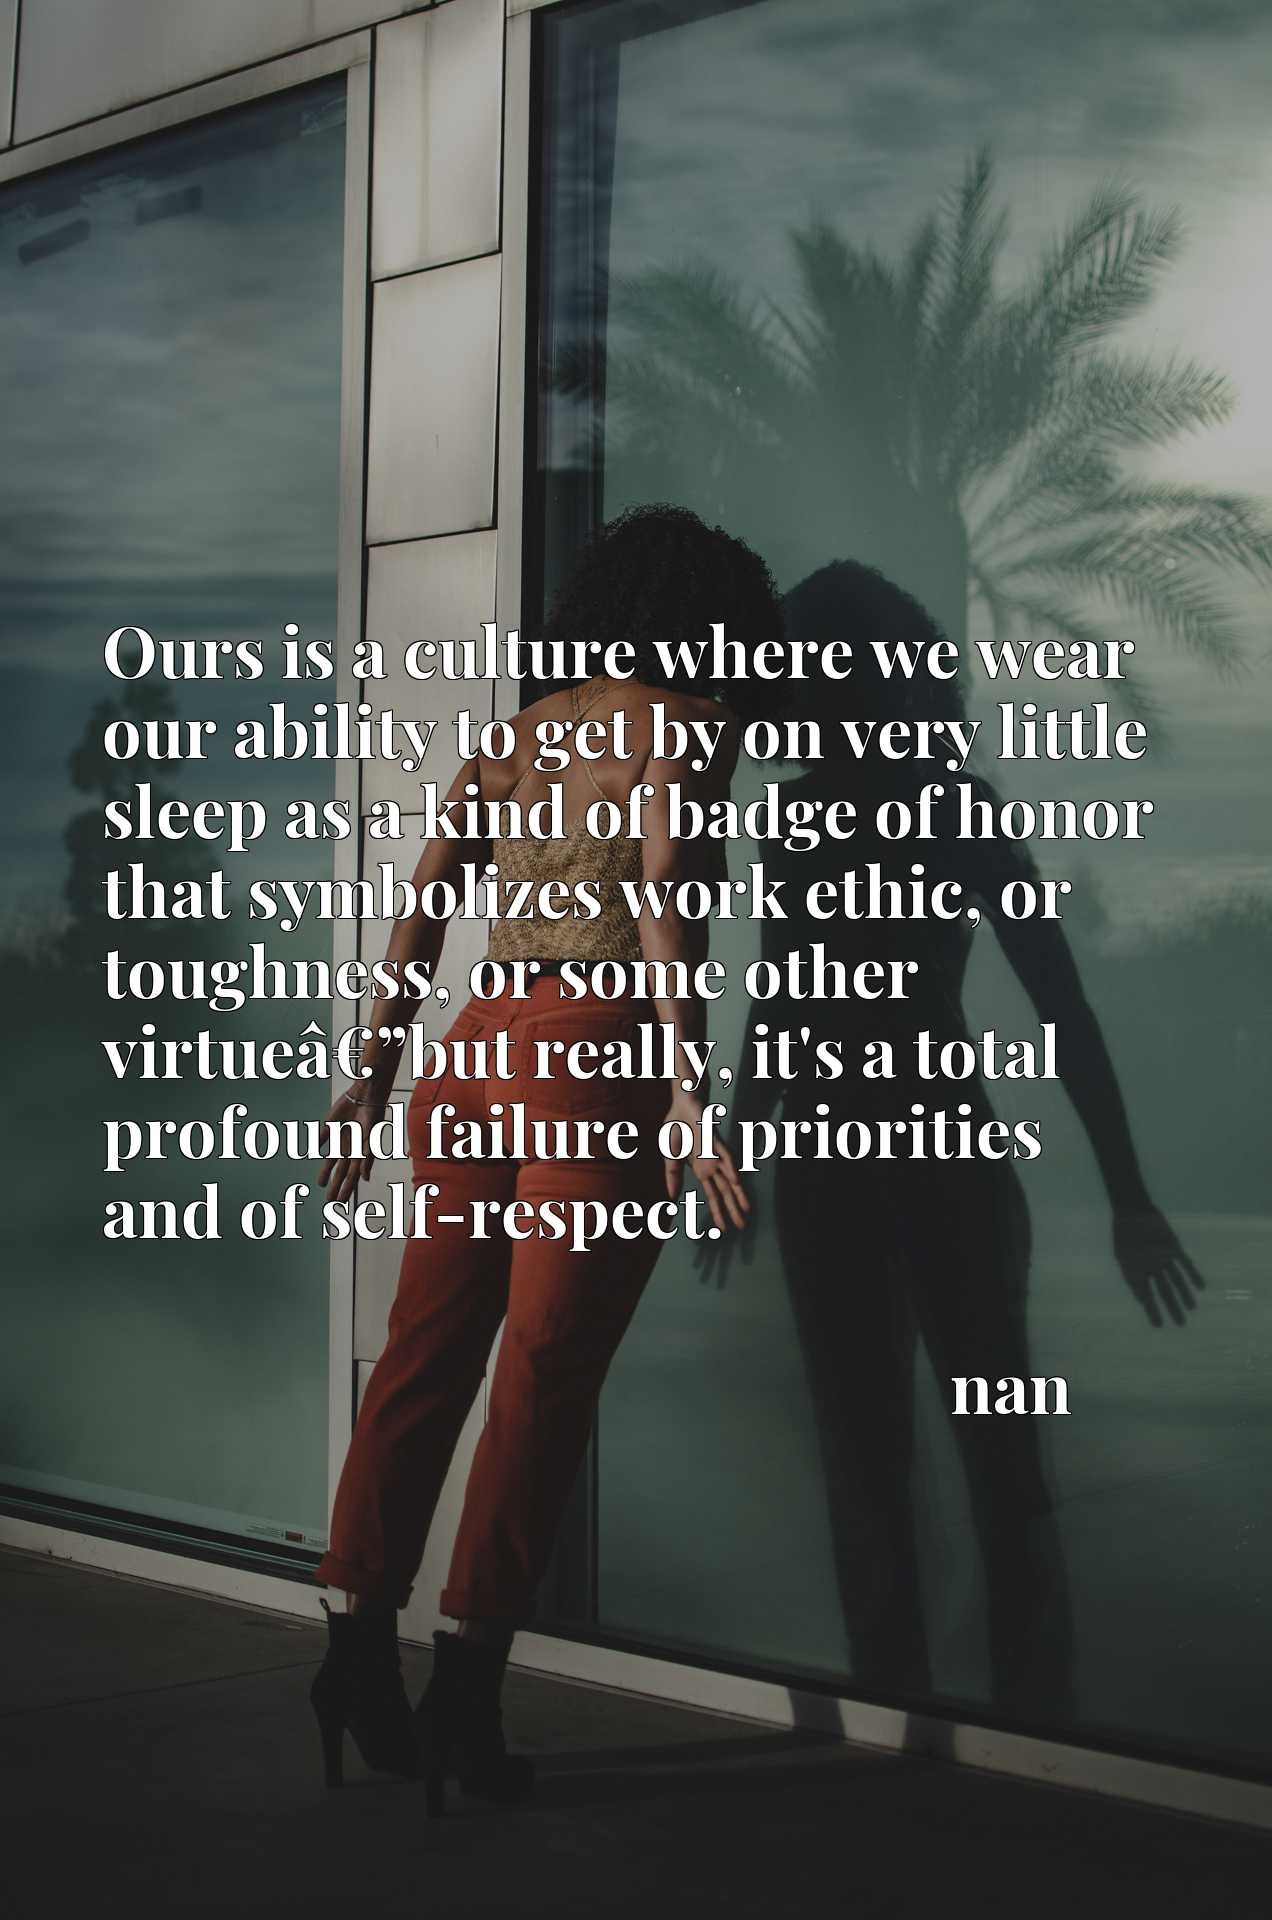 """Ours is a culture where we wear our ability to get by on very little sleep as a kind of badge of honor that symbolizes work ethic, or toughness, or some other virtueaEUR""""but really, it's a total profound failure of priorities and of self-respect."""